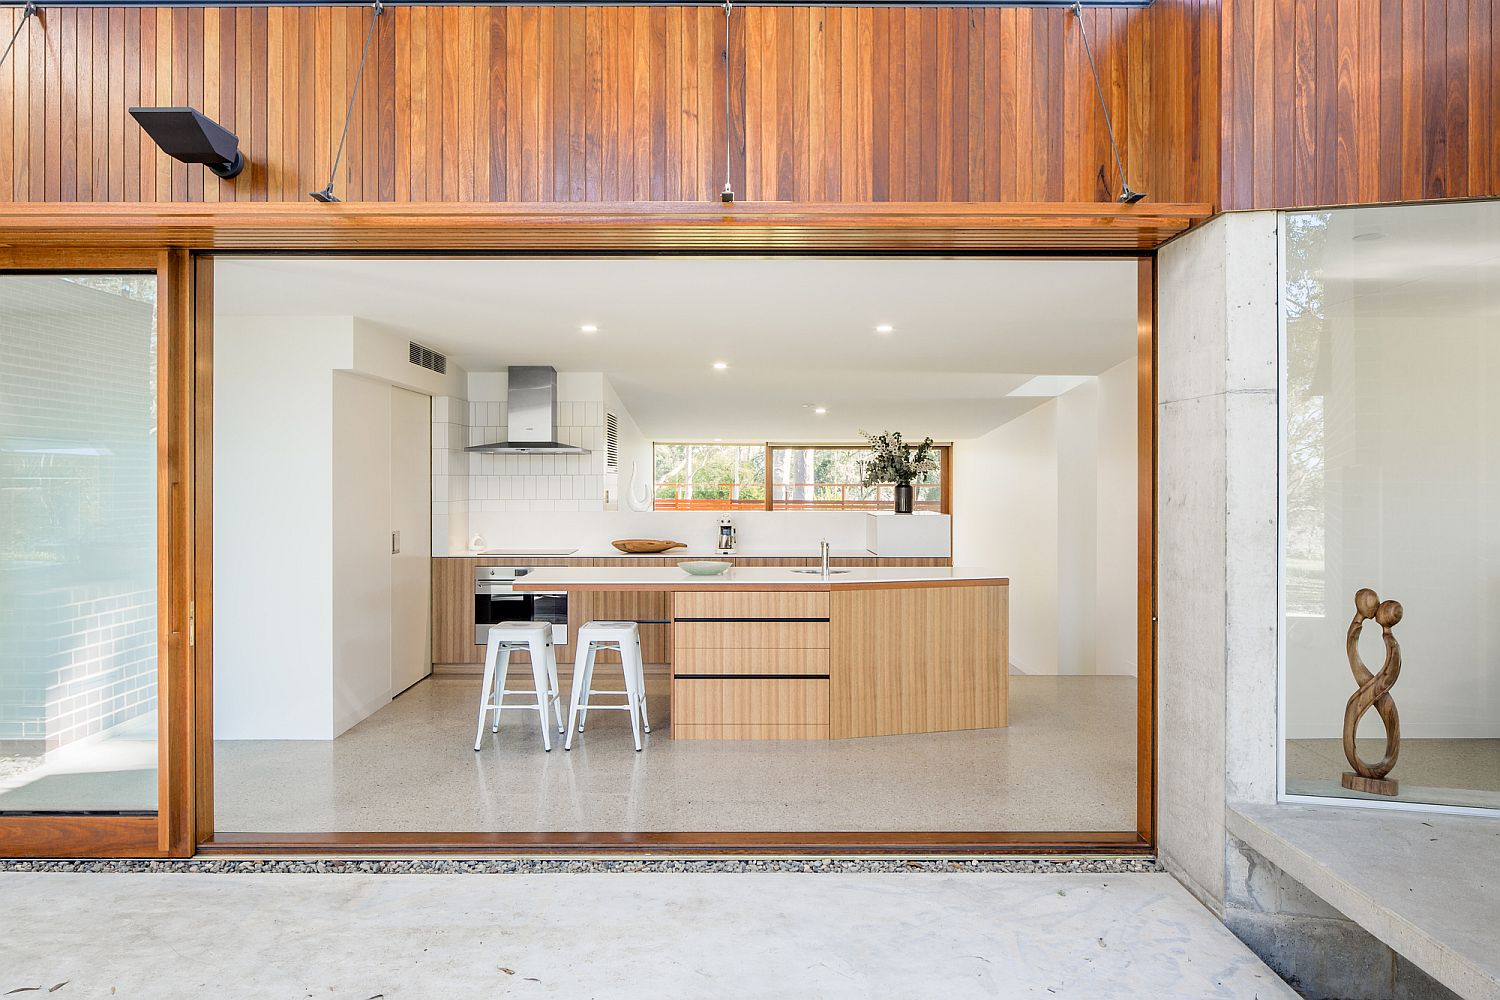 Sliding glass walls with wooden frame separate the kitchen from the garden outside